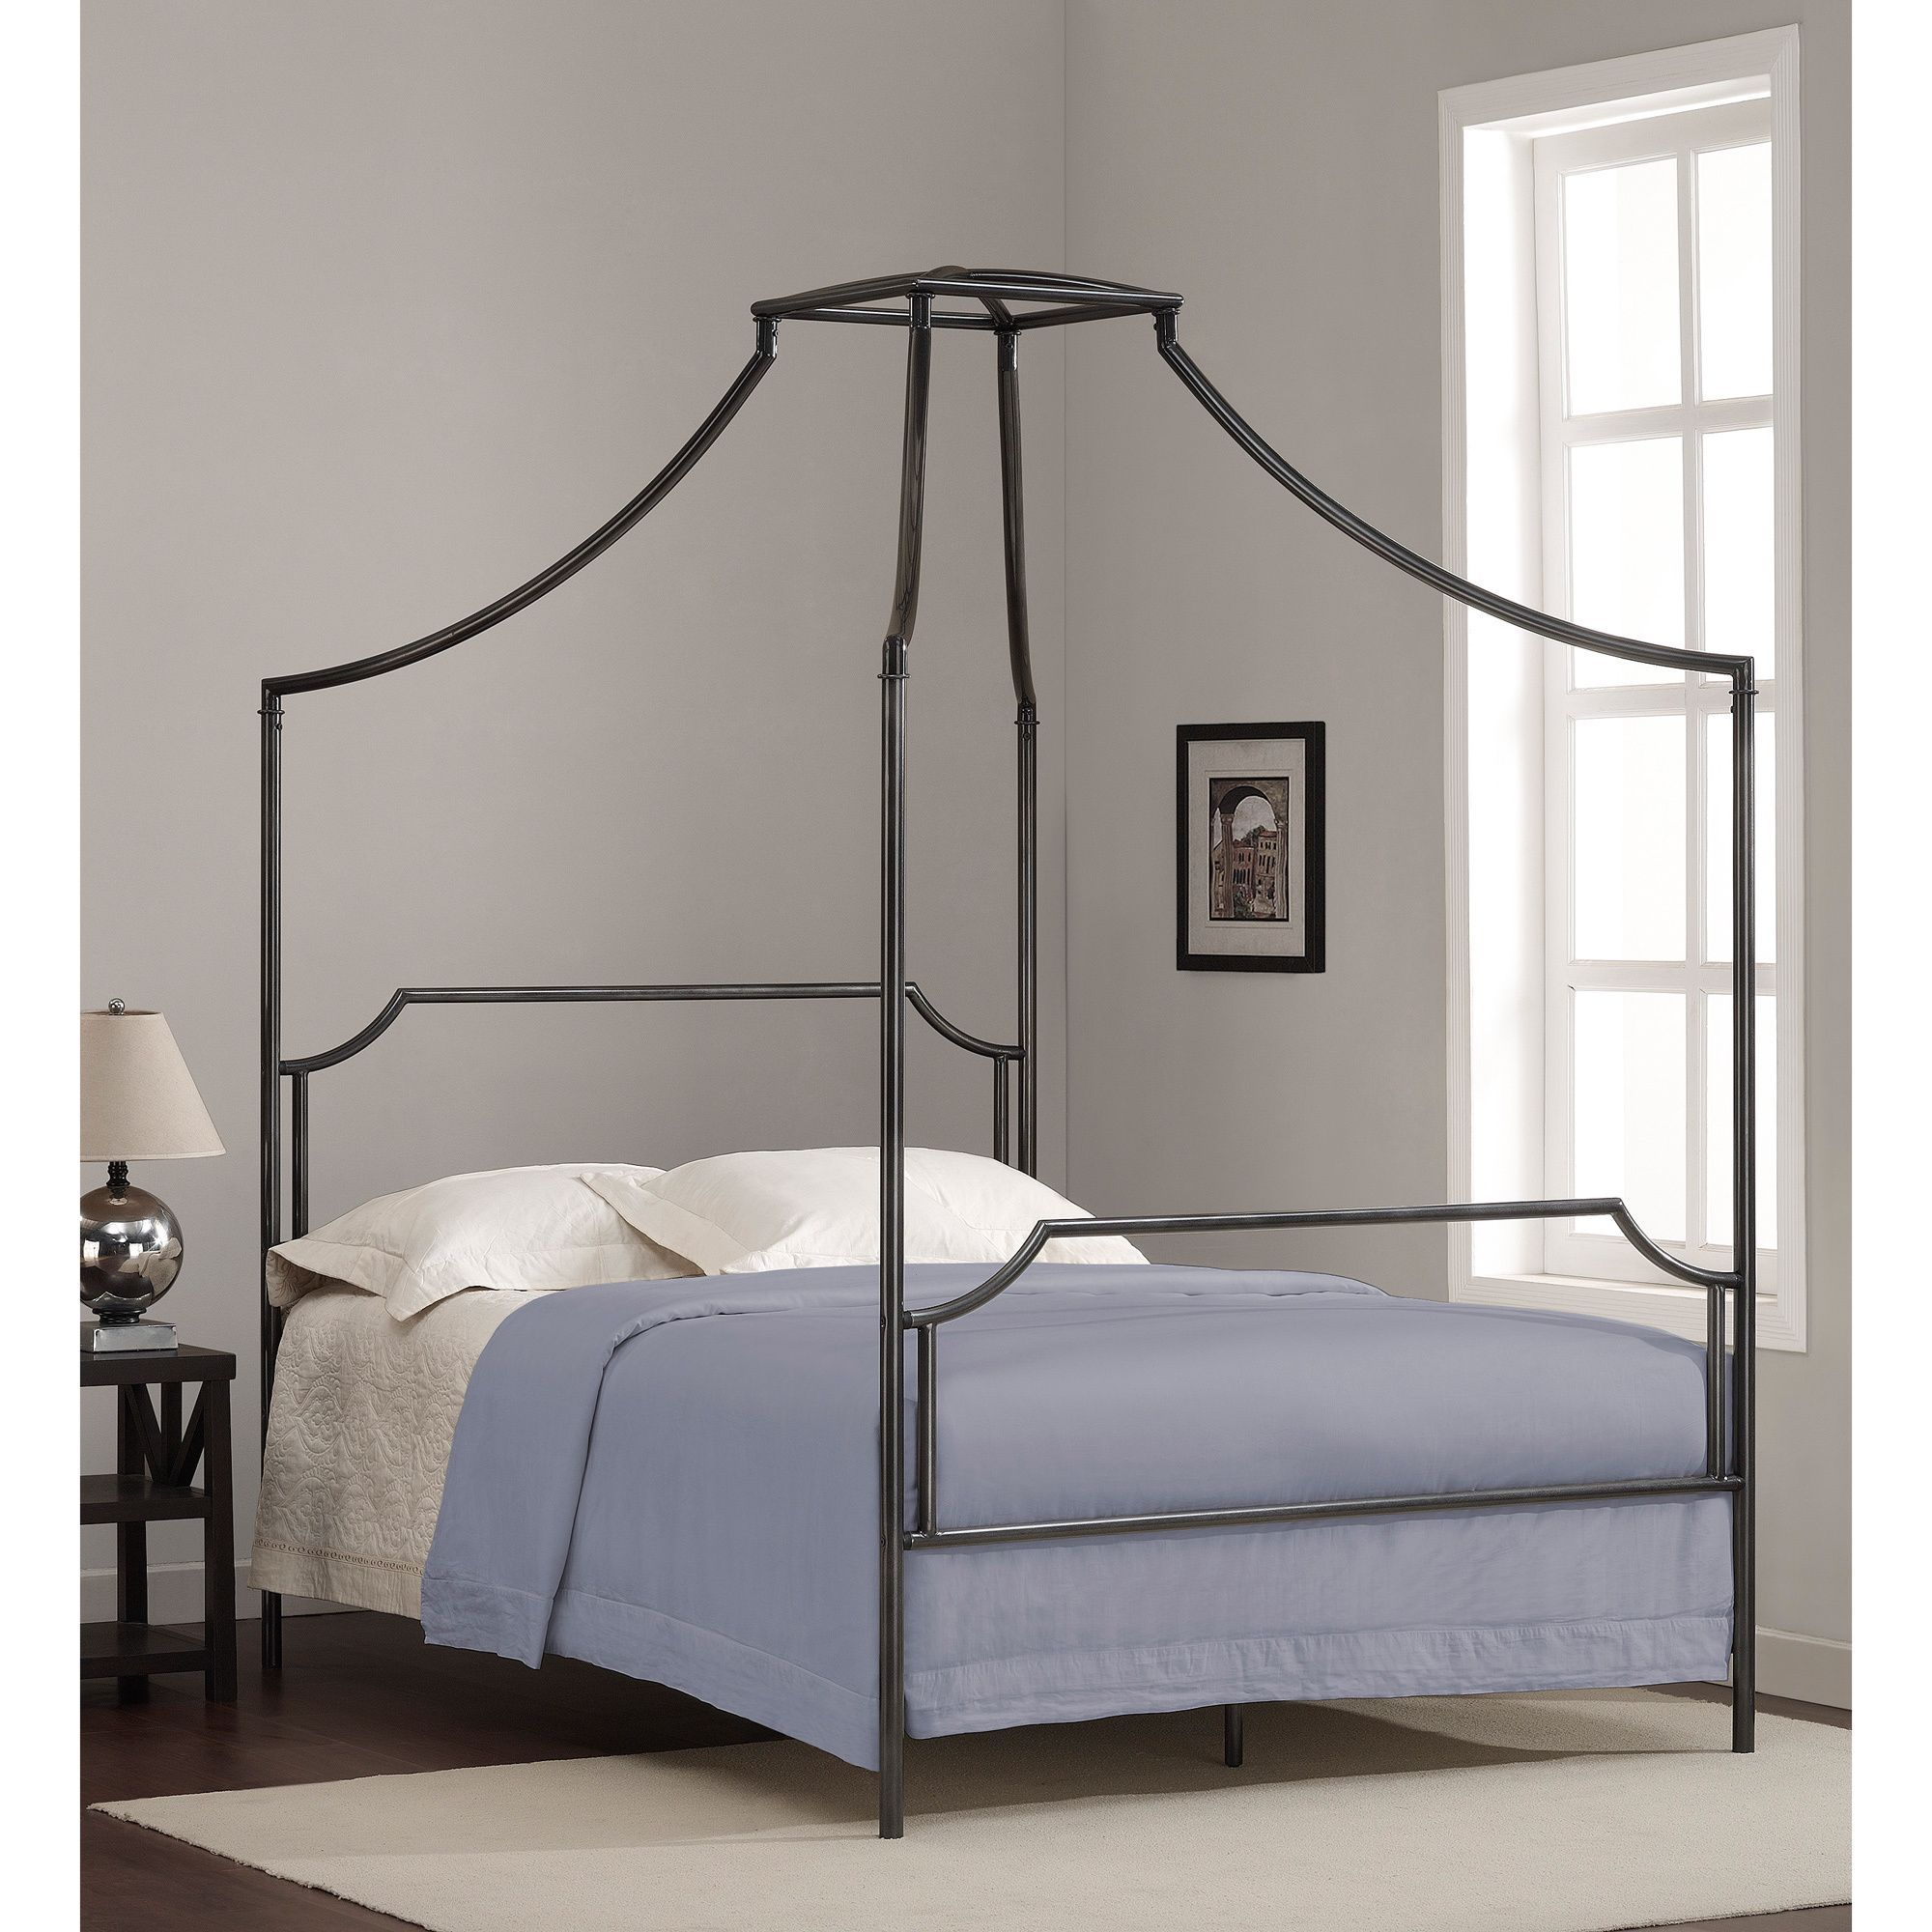 Best Bailey Charcoal Full Size Canopy Bed Frame By I Love 400 x 300